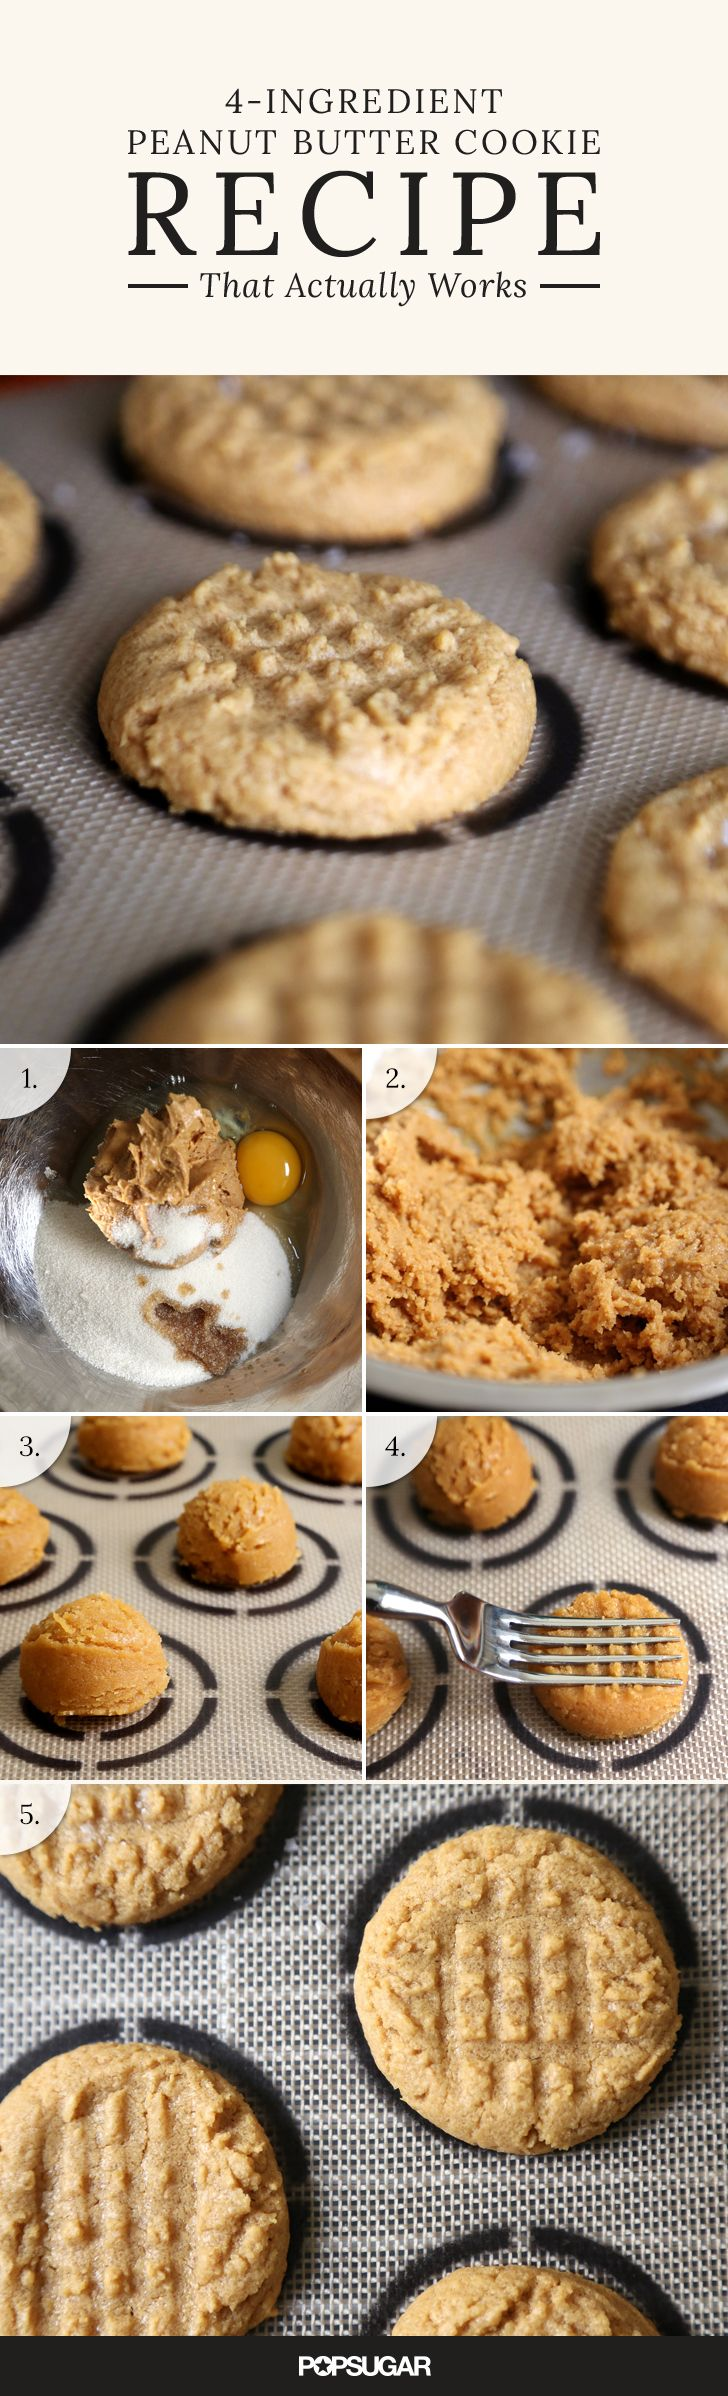 Unlike other fussier cookie recipes, all the ingredients are dumped and mixed together, and due to the high fat content in the peanut butter, the dough balls can be shaped in a hot second without sticking to your fingers. Get the easy recipe here!